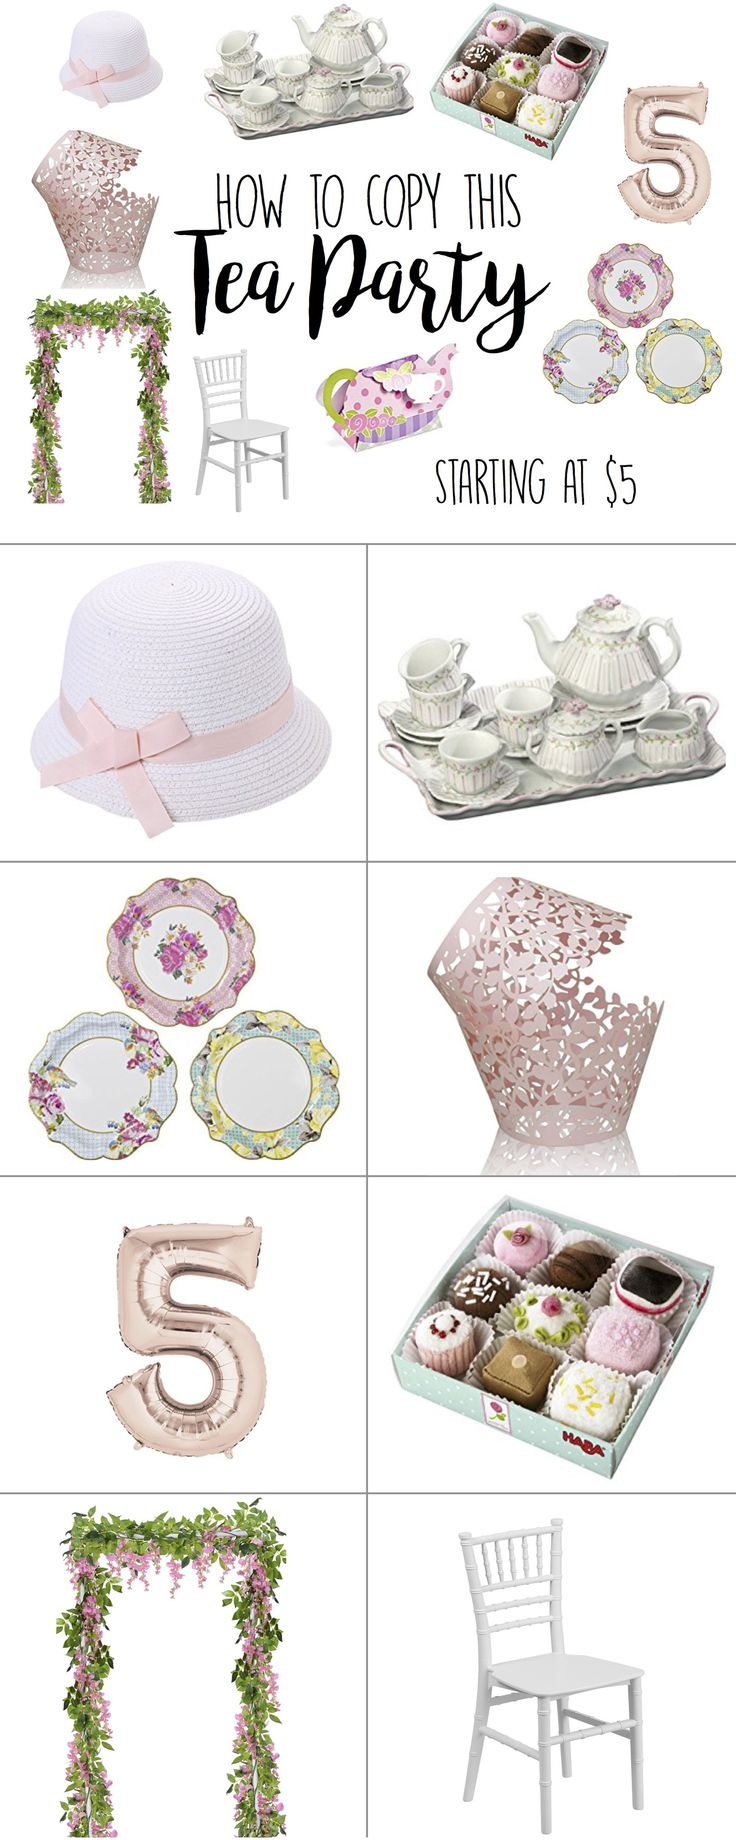 Birthday Party Ideas for Girls, Tea Party Birthday Theme Ideas, Tea Parties for Little Girls, Teapot and tea cups, china dishes for tea parties, tea party ideas theme decor decorations, tea party petit fours, cupcake liners, party banquet chairs for girls, rose gold number balloon, 2018 party themes, top girl party theme ideas, parties for little girls, fancy frilly fun tea parties, shabby chic party, birthday party ideas for four year olds, birthday party ideas for five yo, #birthdayparty